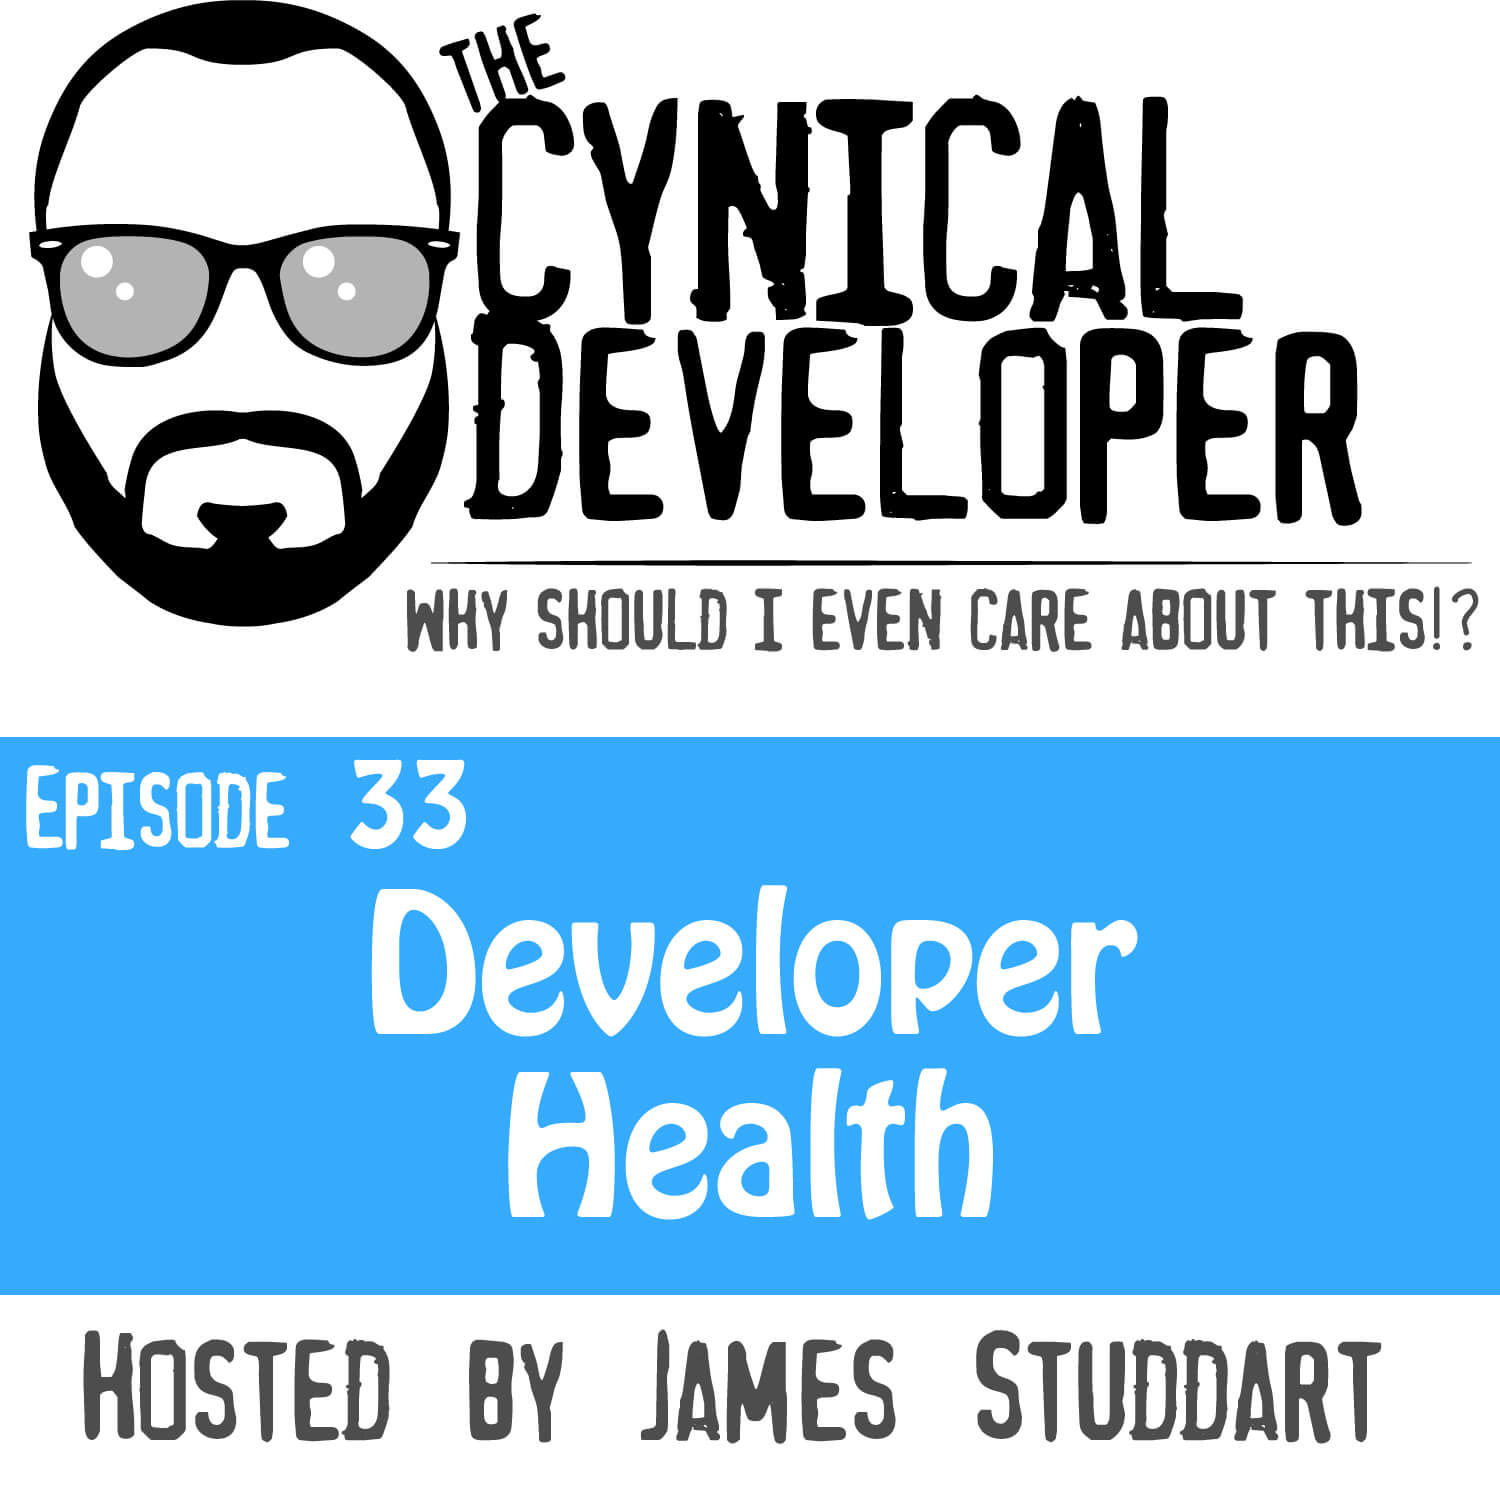 Episode 33 - Developer Health